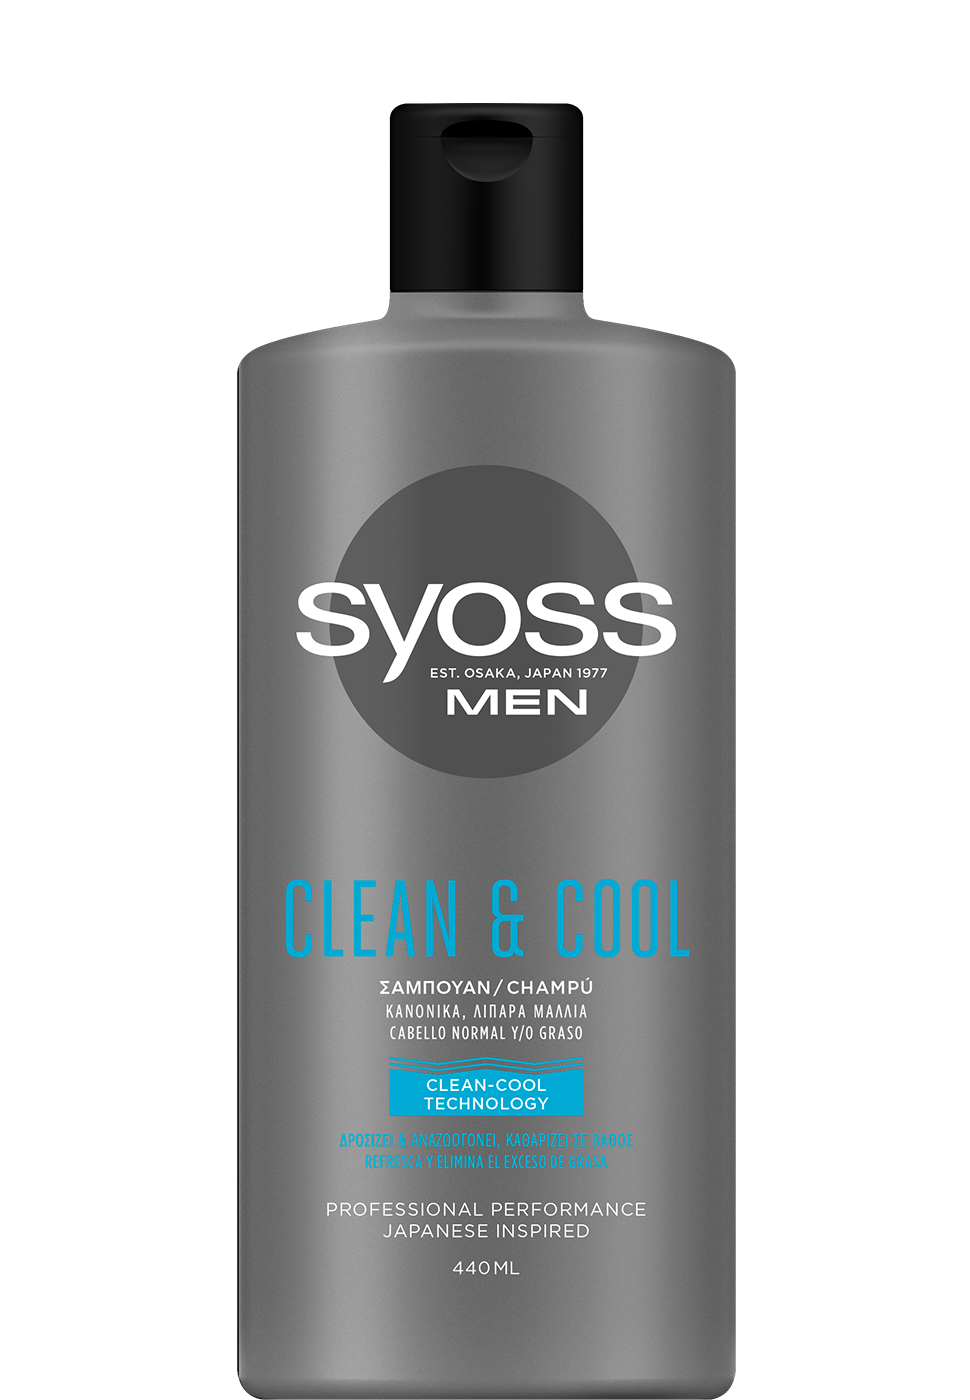 syoss-champu-970x1400px_es_0001_SYOSS-GR-ES-RL20-MEN-CLEAN-and-COOL-SHP-440ml-Front